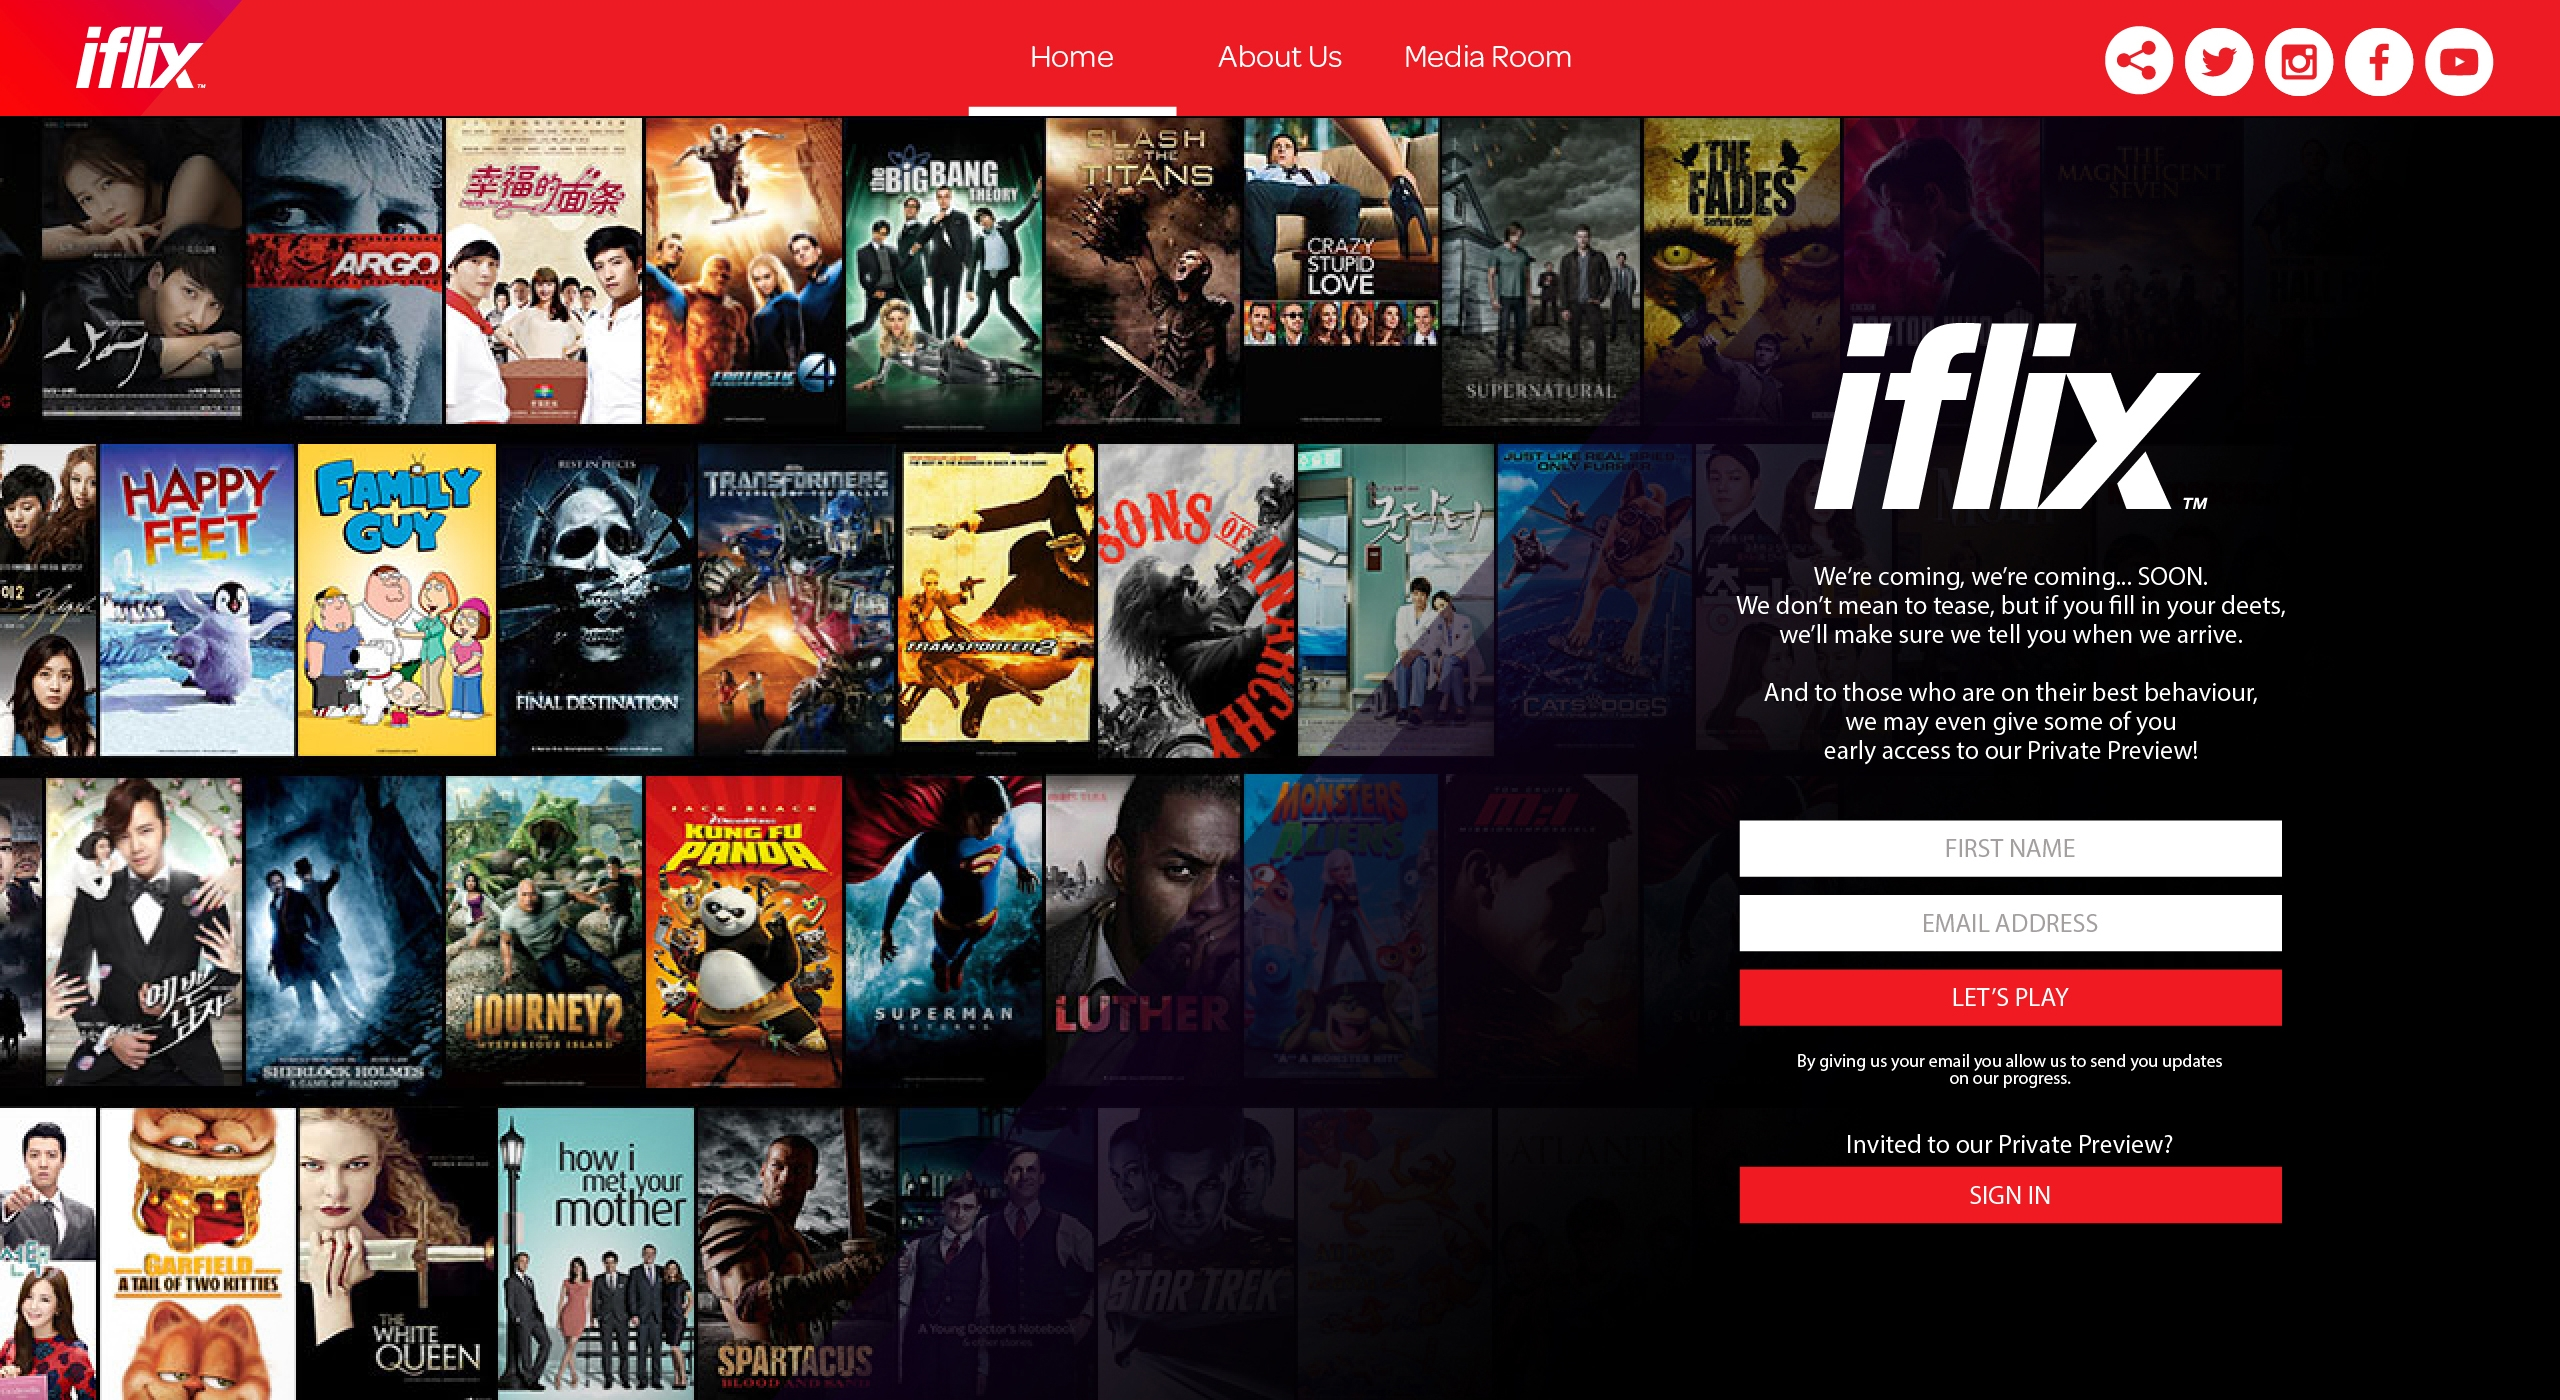 Iflix raises $133M funding led by USA media firm Hearst